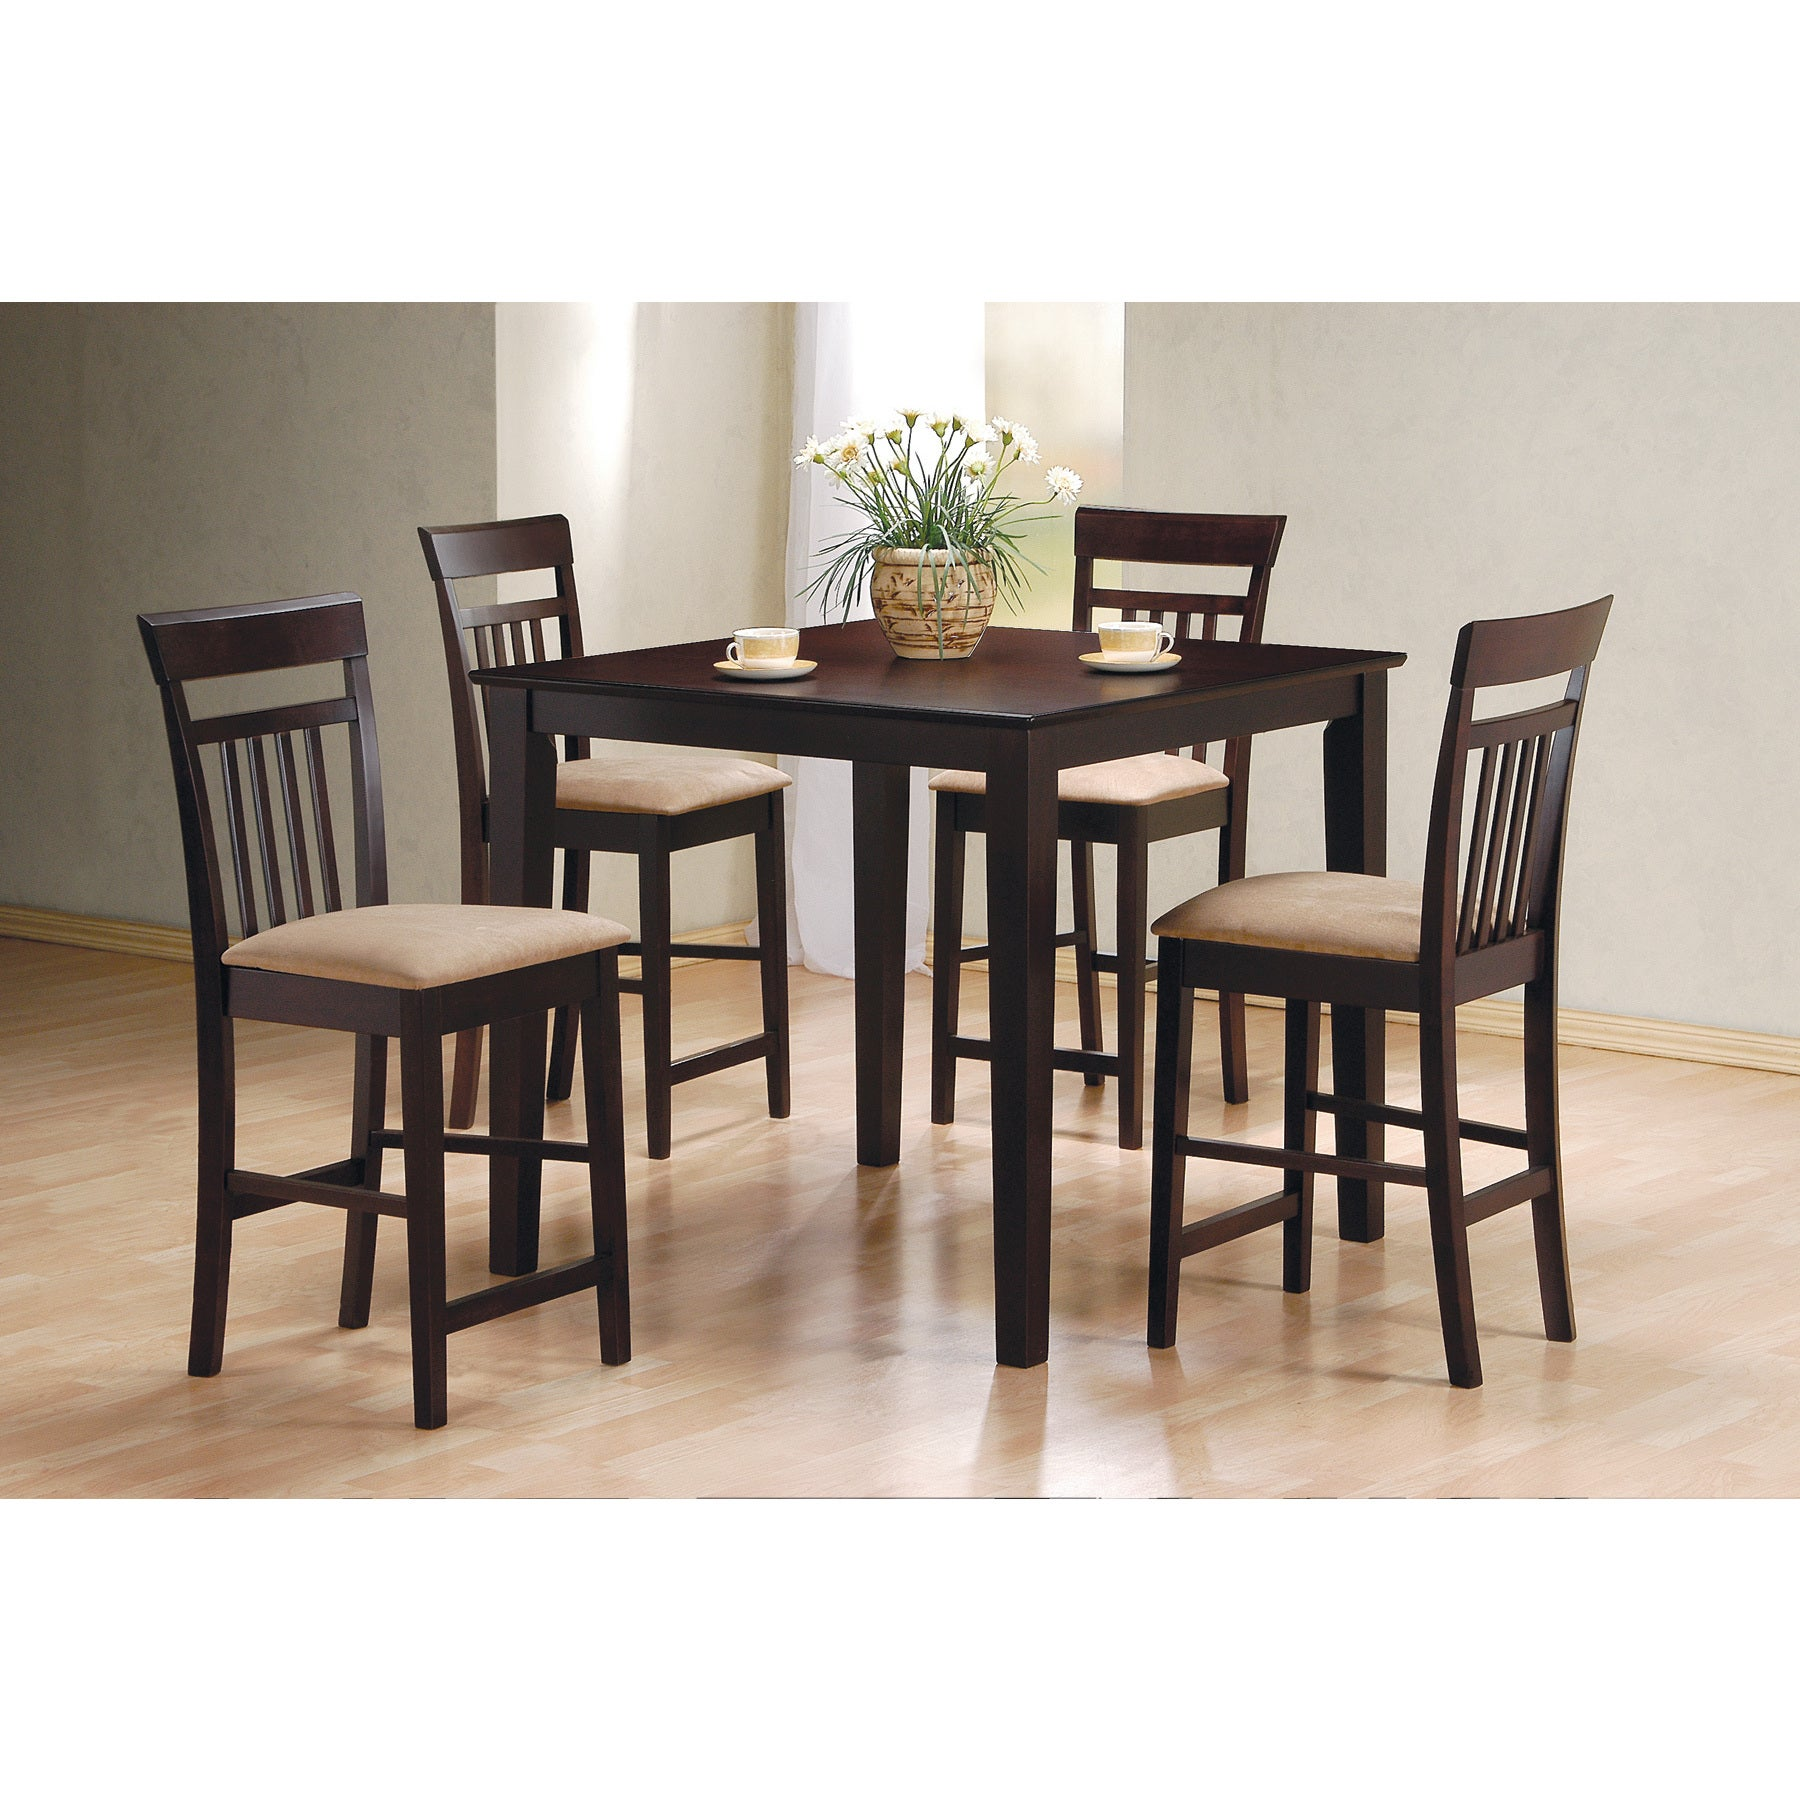 Coaster Furniture Cappuccino 5-piece Dining Set (Cappucci...